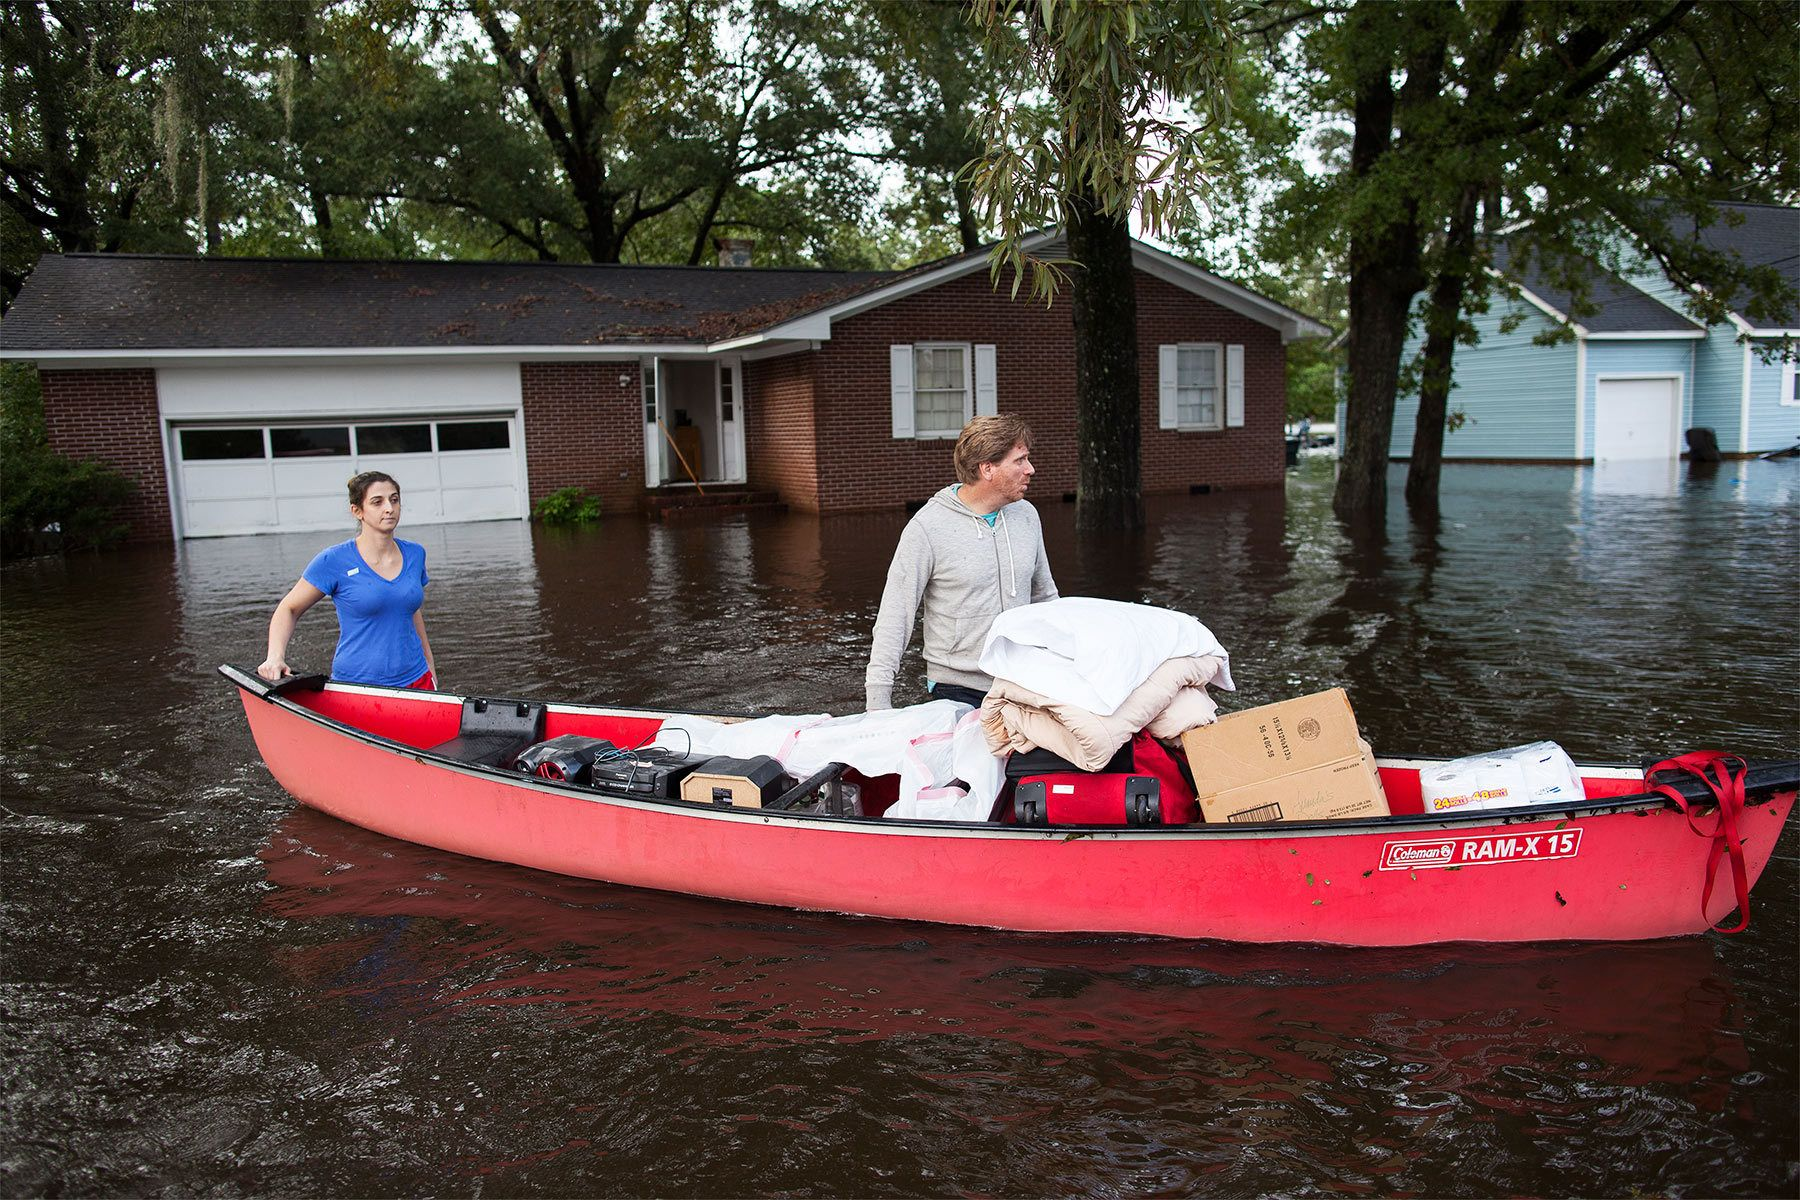 Greg Rodermond (R) and Mandy Barnhill, use a canoe to evacuate Mandy's home on Long Avenue in Conway, South Carolina October 5, 2015. Torrential rainfall that South Carolina's governor called a once-in-a-millennium downpour triggered flooding in the southeastern U.S. state on Sunday, causing at least eight deaths in the Carolinas. The storm had dumped more than 20 inches (50 cm) of rain in parts of central South Carolina since Friday, the National Weather Service said. The state climatologist forecast another 2 to 6 inches (5 to 15 cm) through Monday as the rain began to slacken. REUTERS/Randall Hill